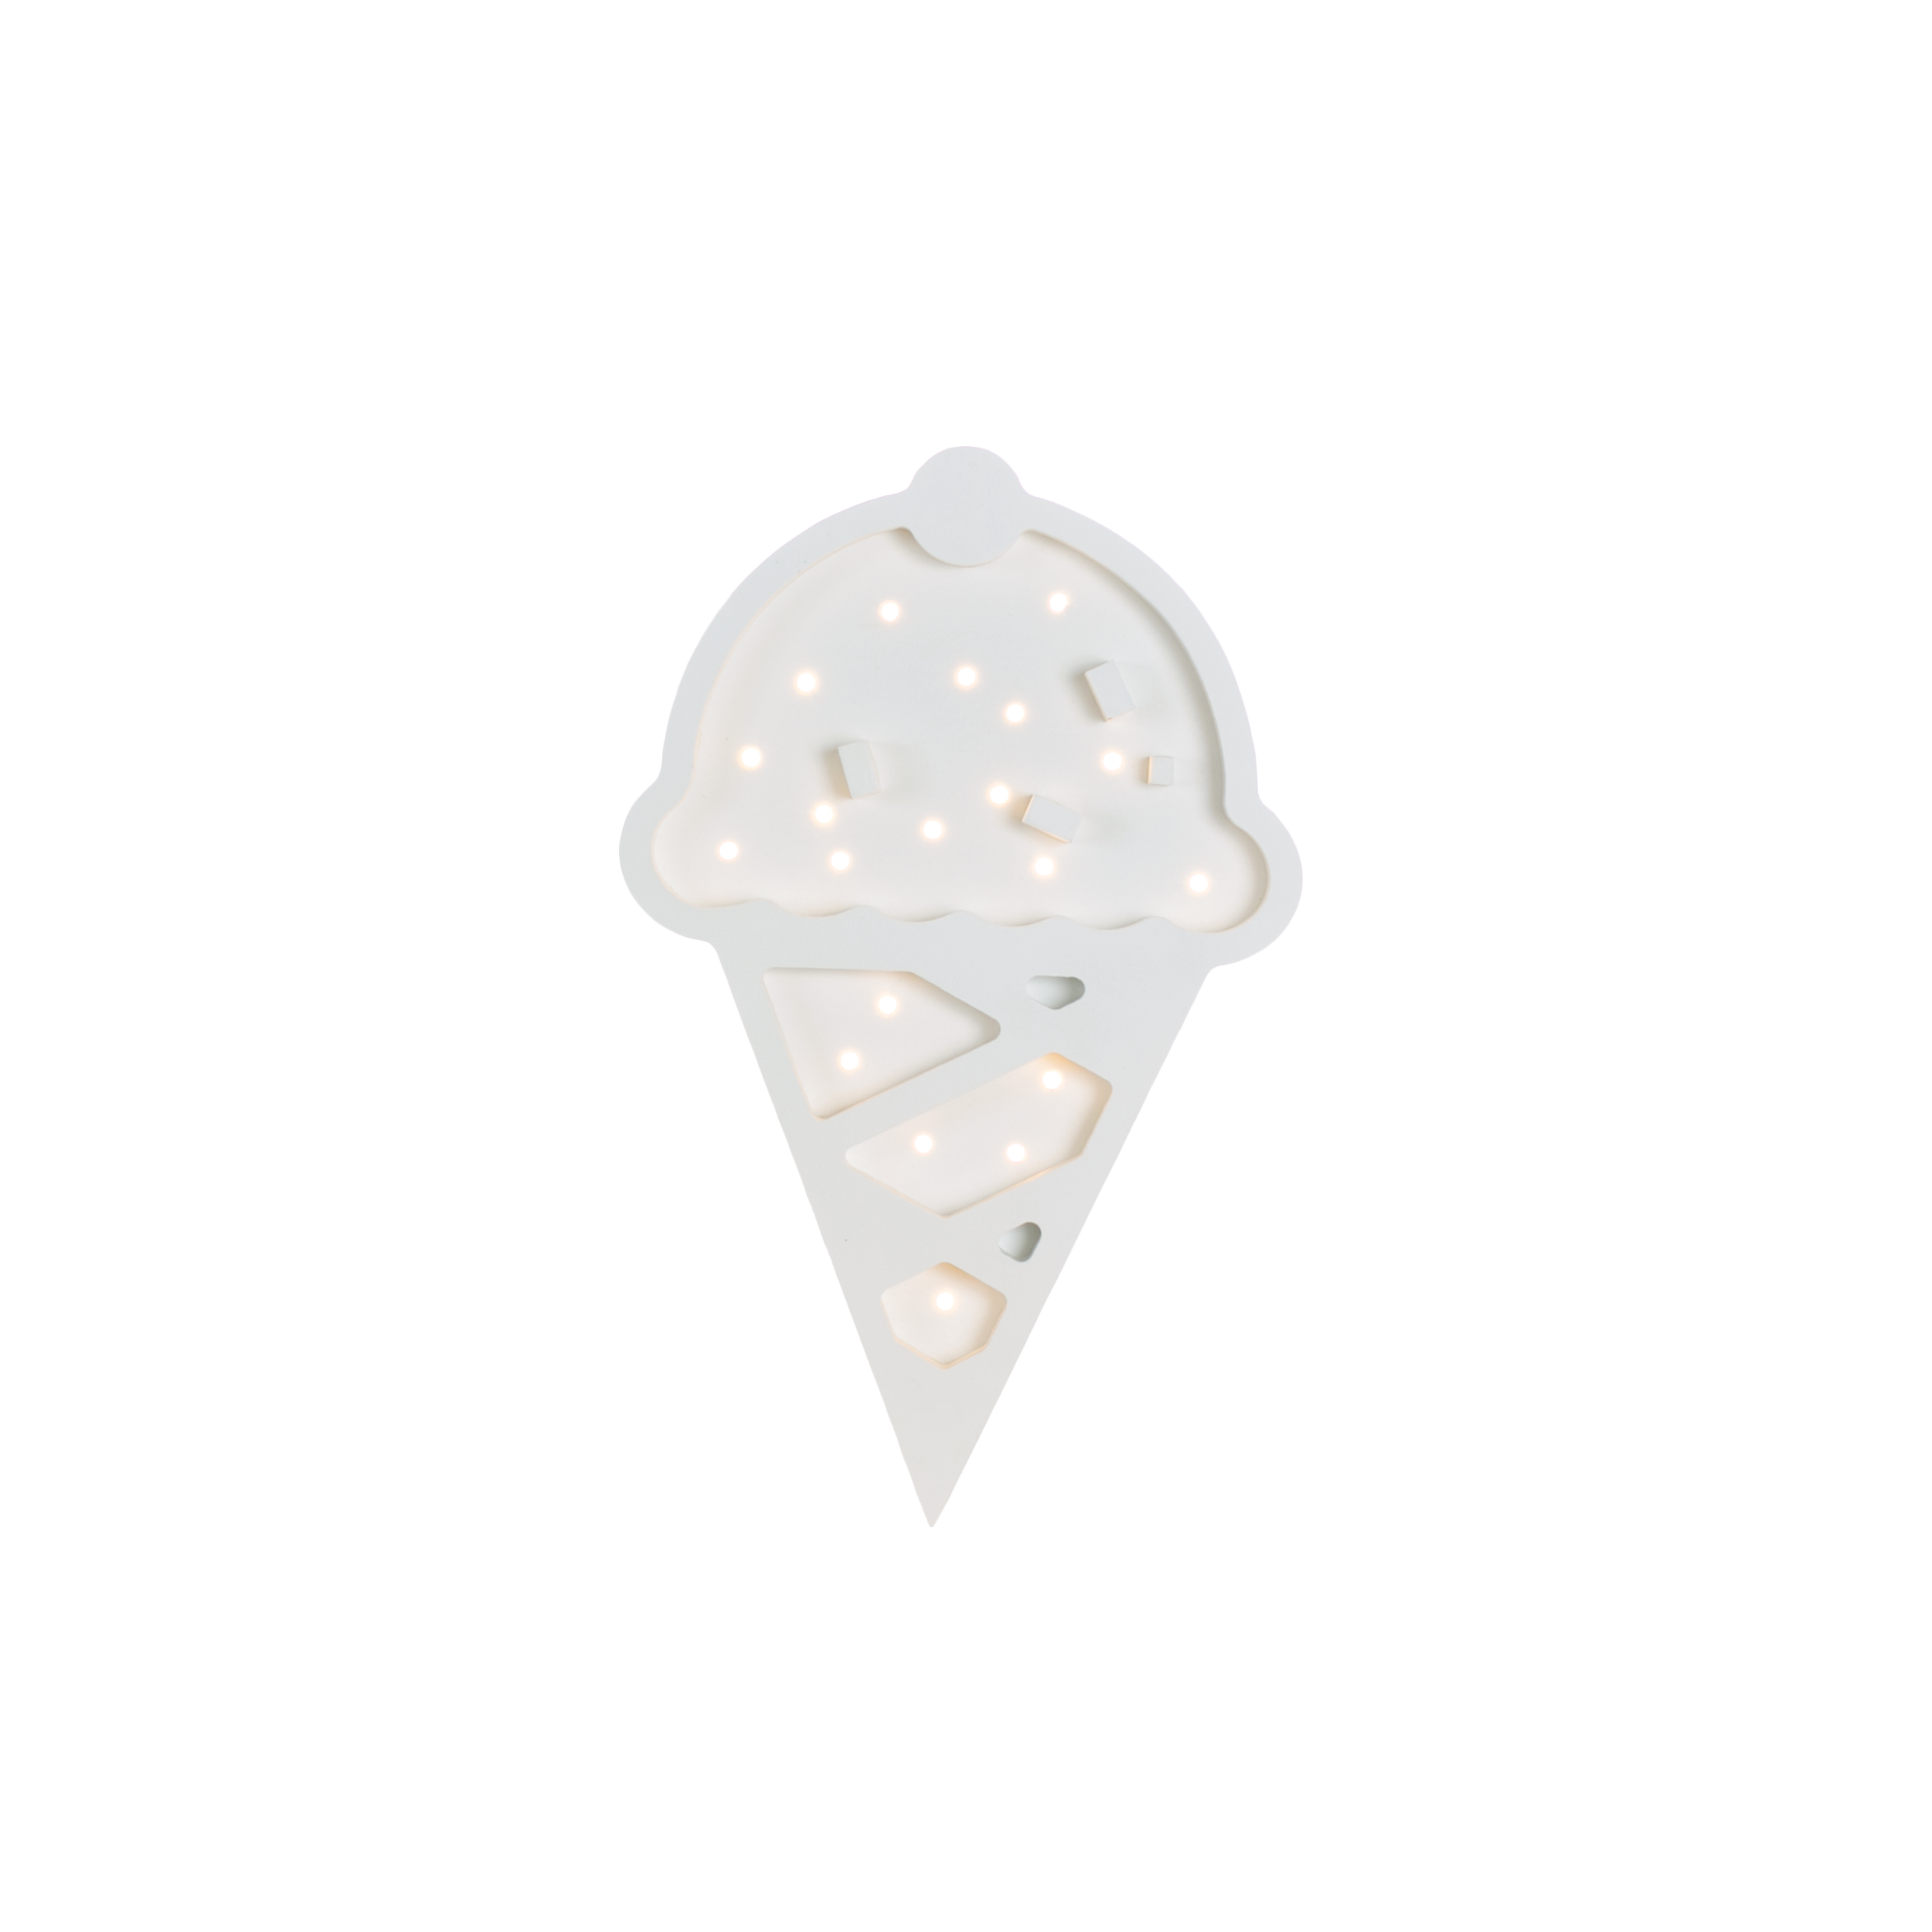 Ice Cream Marquee Warm White Light, Non-Battery Operated-Marquee Art-Pulp Function